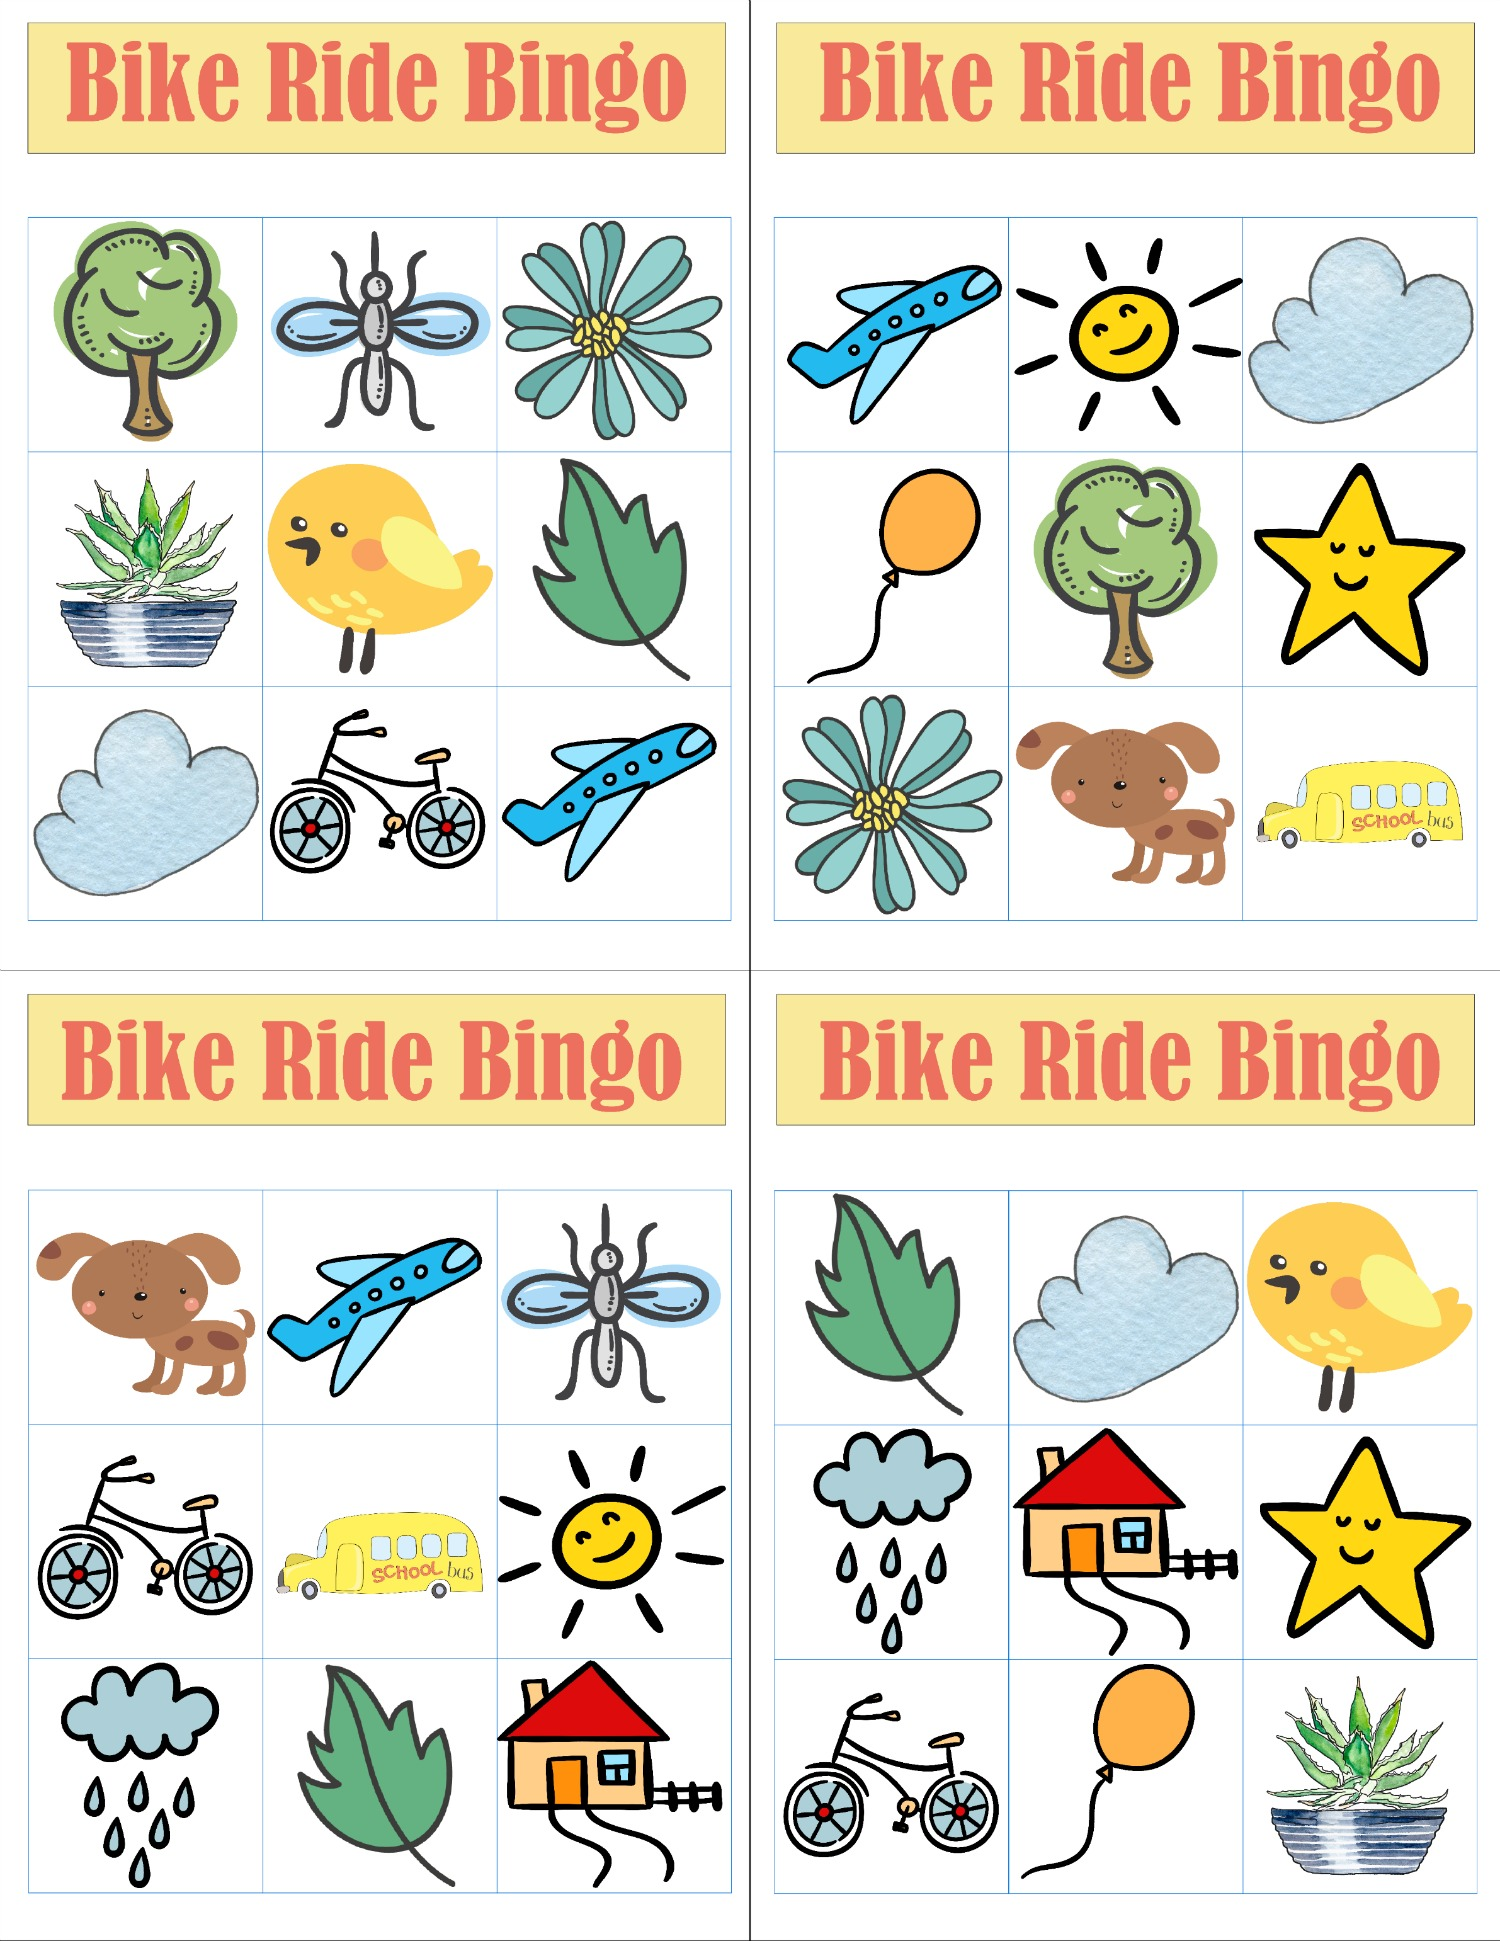 Bike Ride Bingo Printables Tips For Buying The Right Bike